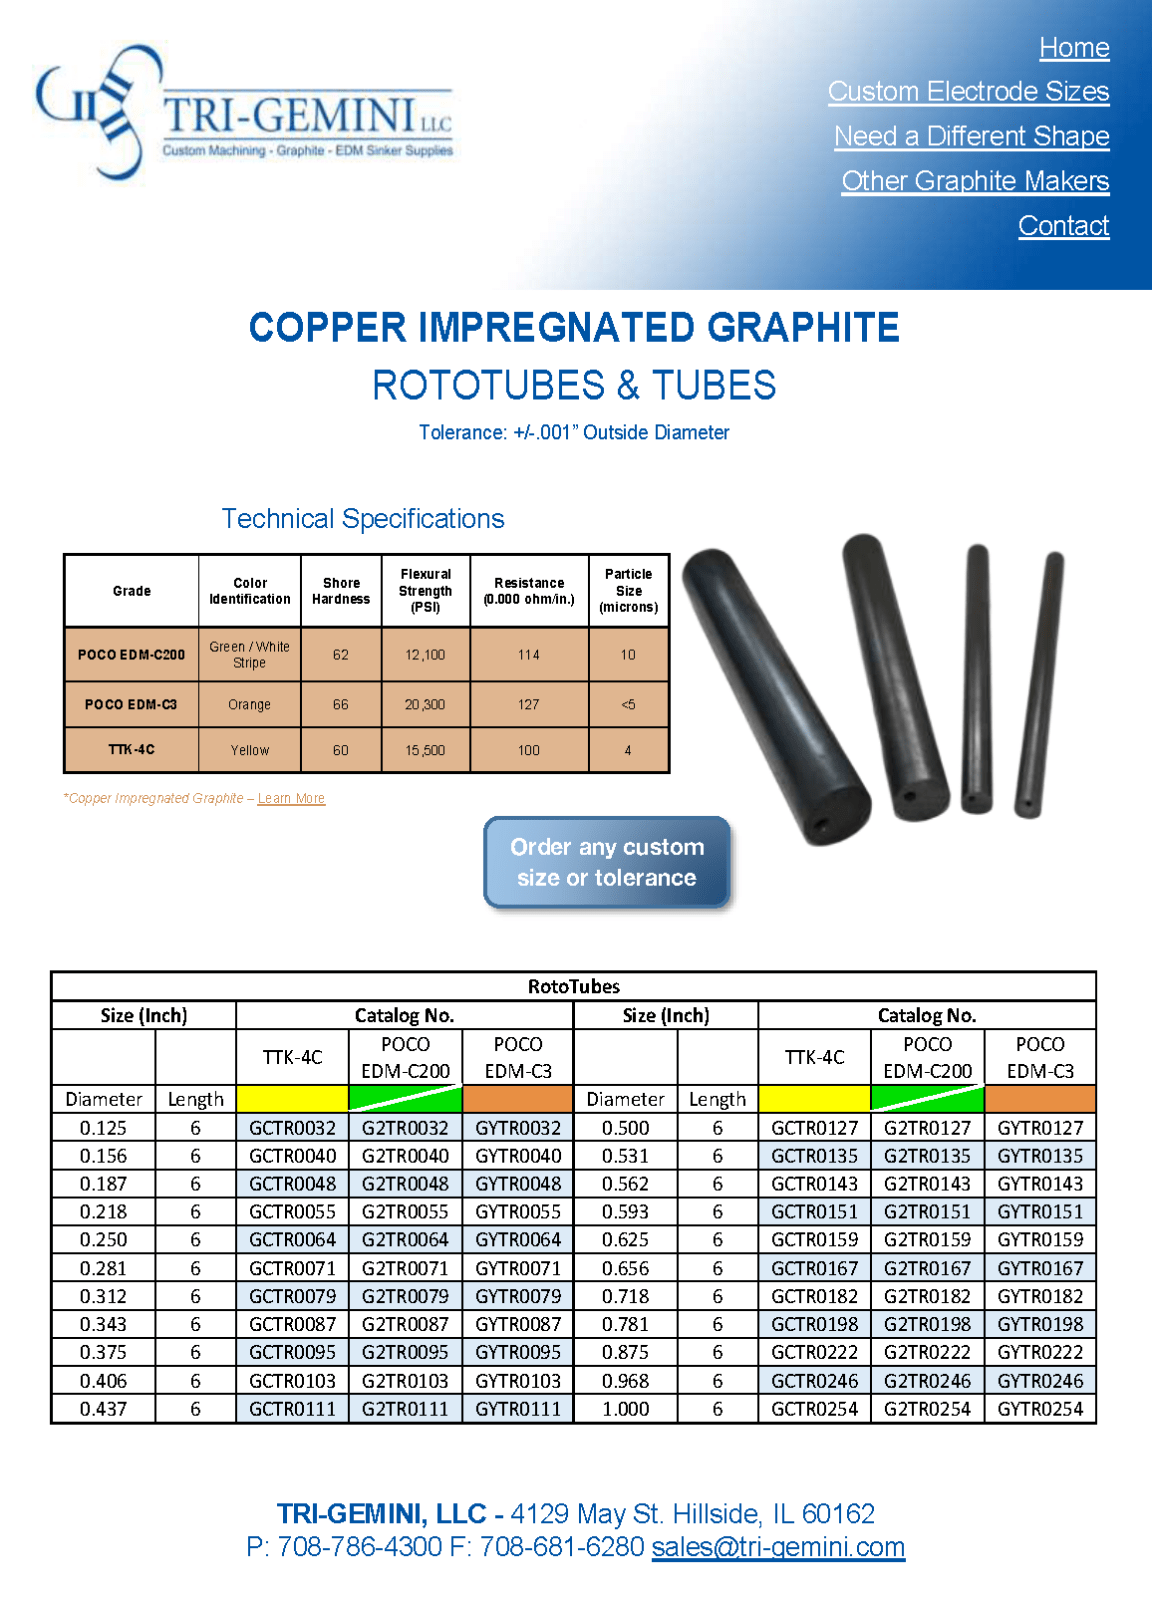 Copper Impregnated RotoTubes & Tubes pic